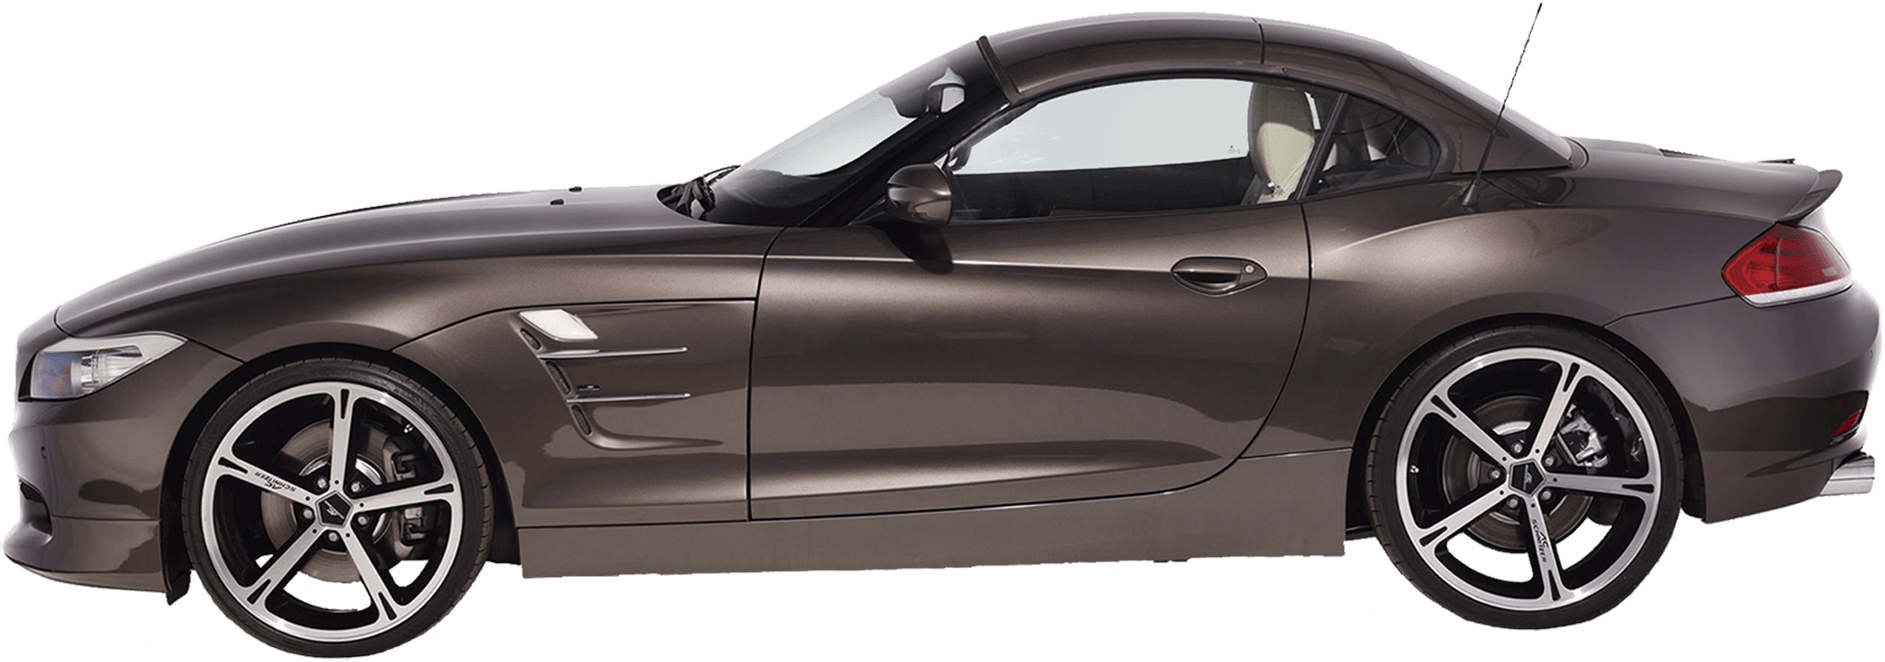 Bmw Z4 Png Image Download PNG Image